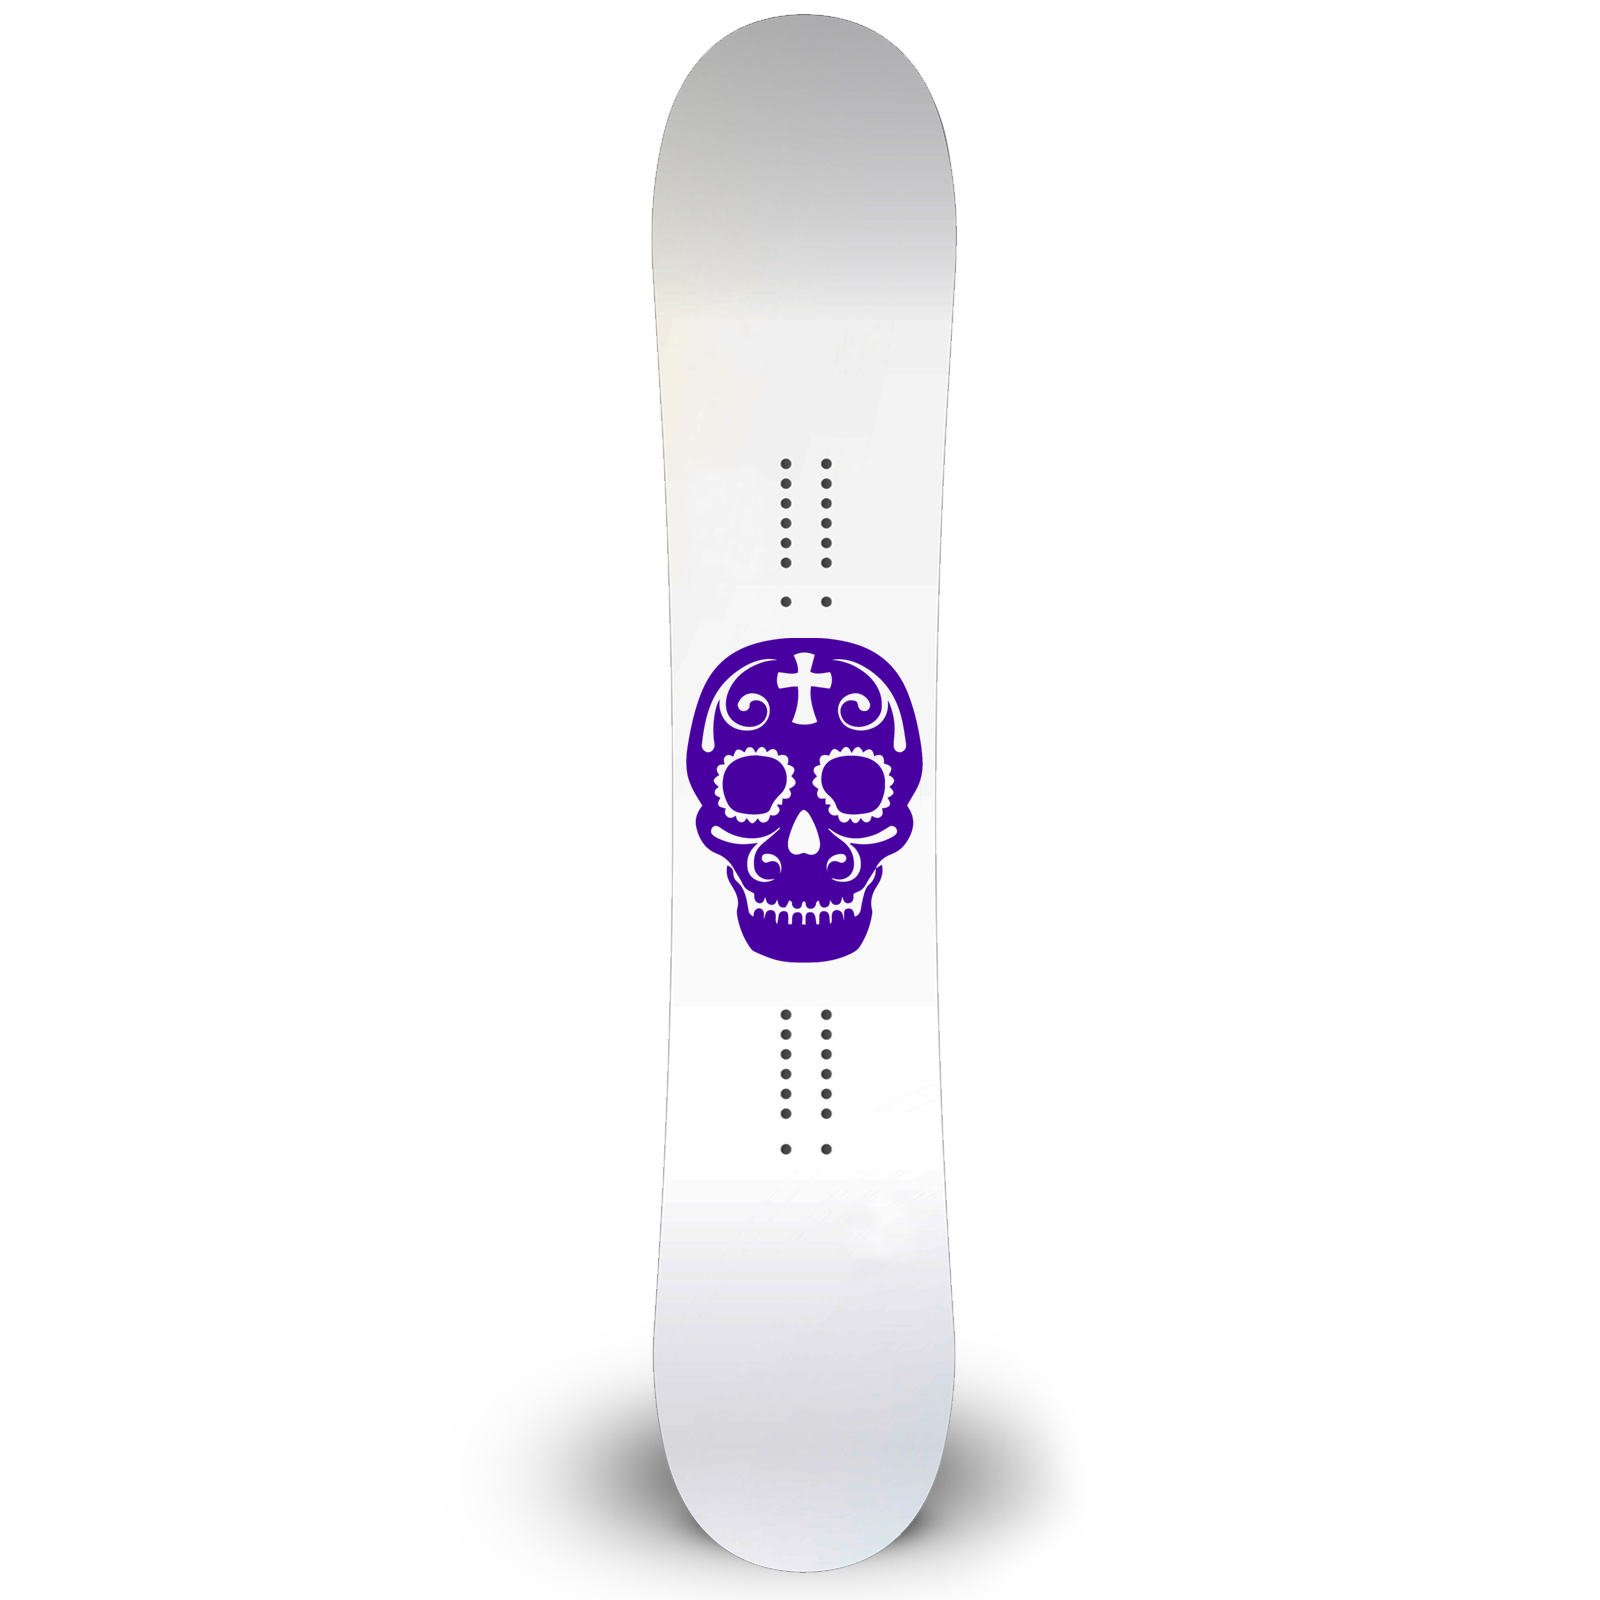 Sugar Skull Outline Snowboard Sticker All Weather Vinyl Decal